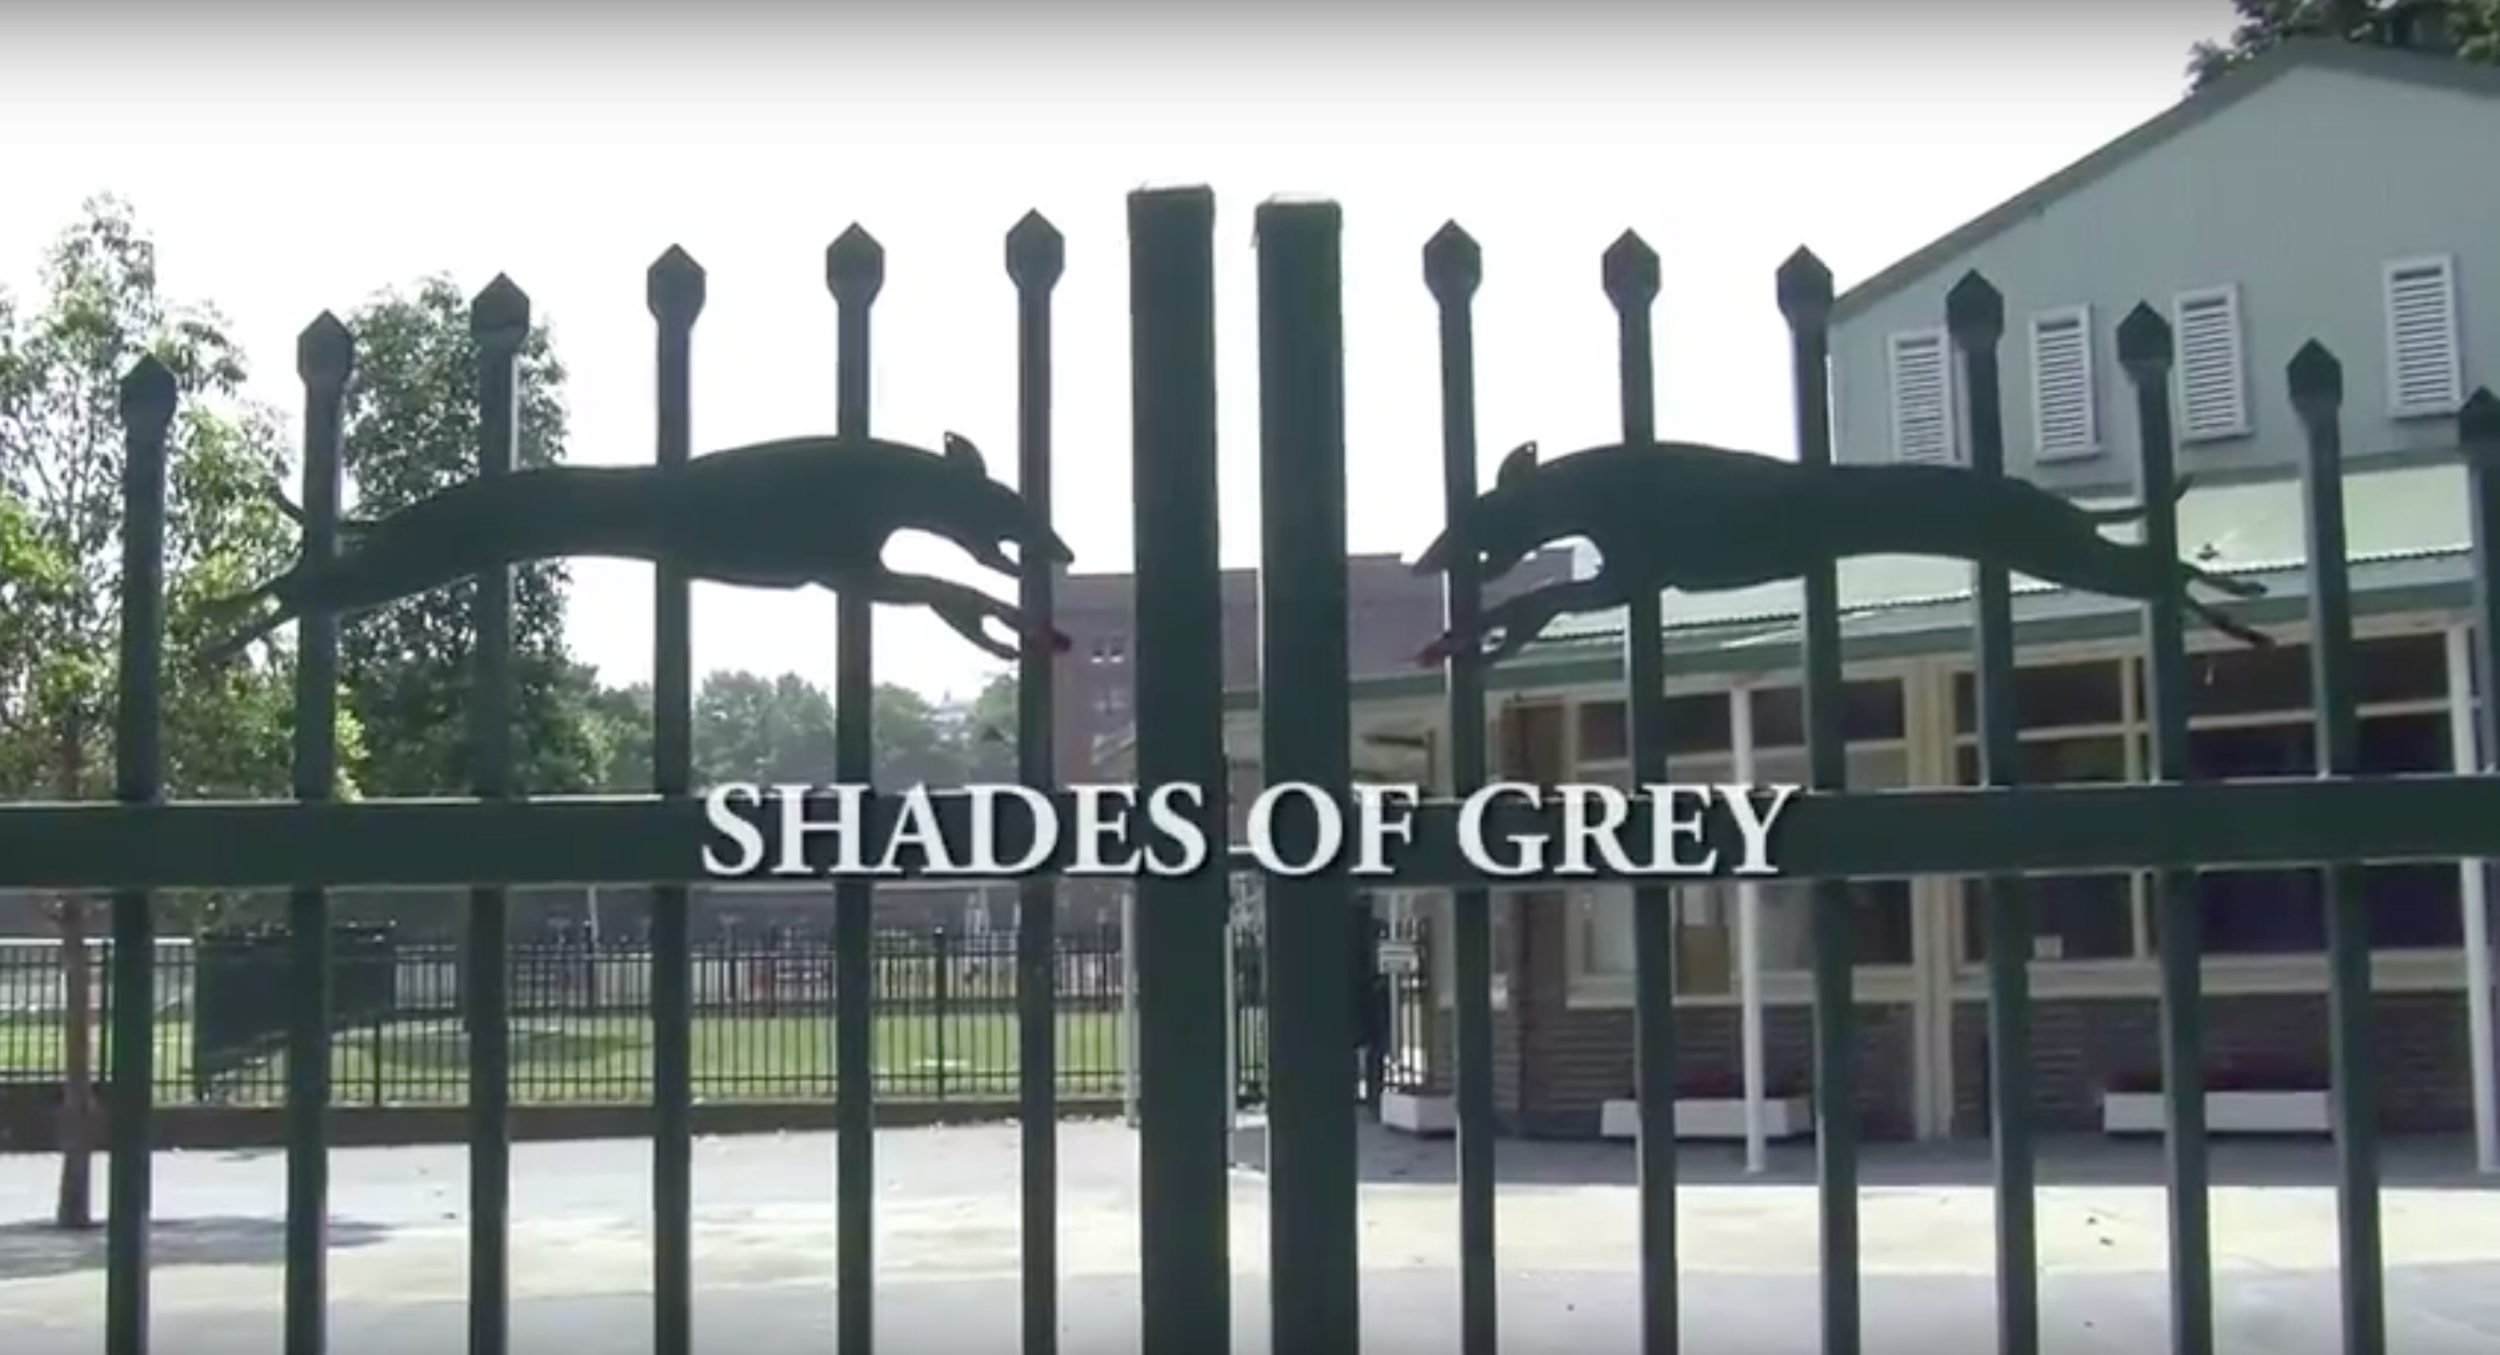 SHADES OF GREY - Short documentary produced for university media course with team. Camera use was mandated by course requirements so no DSLRs were permitted - 2014